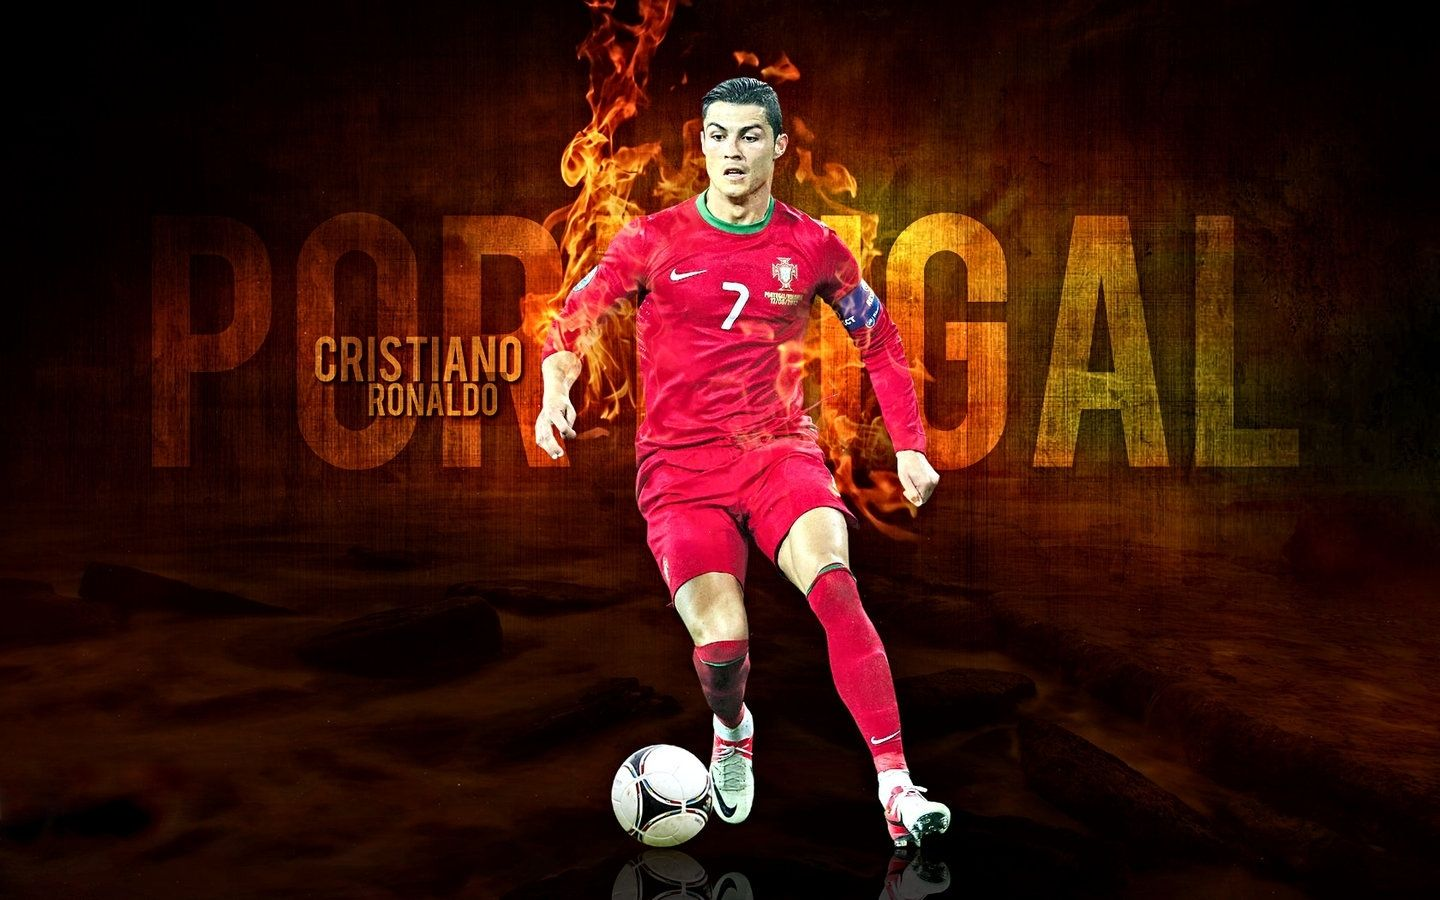 Cristiano Ronaldo Wallpaper Portugal Wallpapersafari